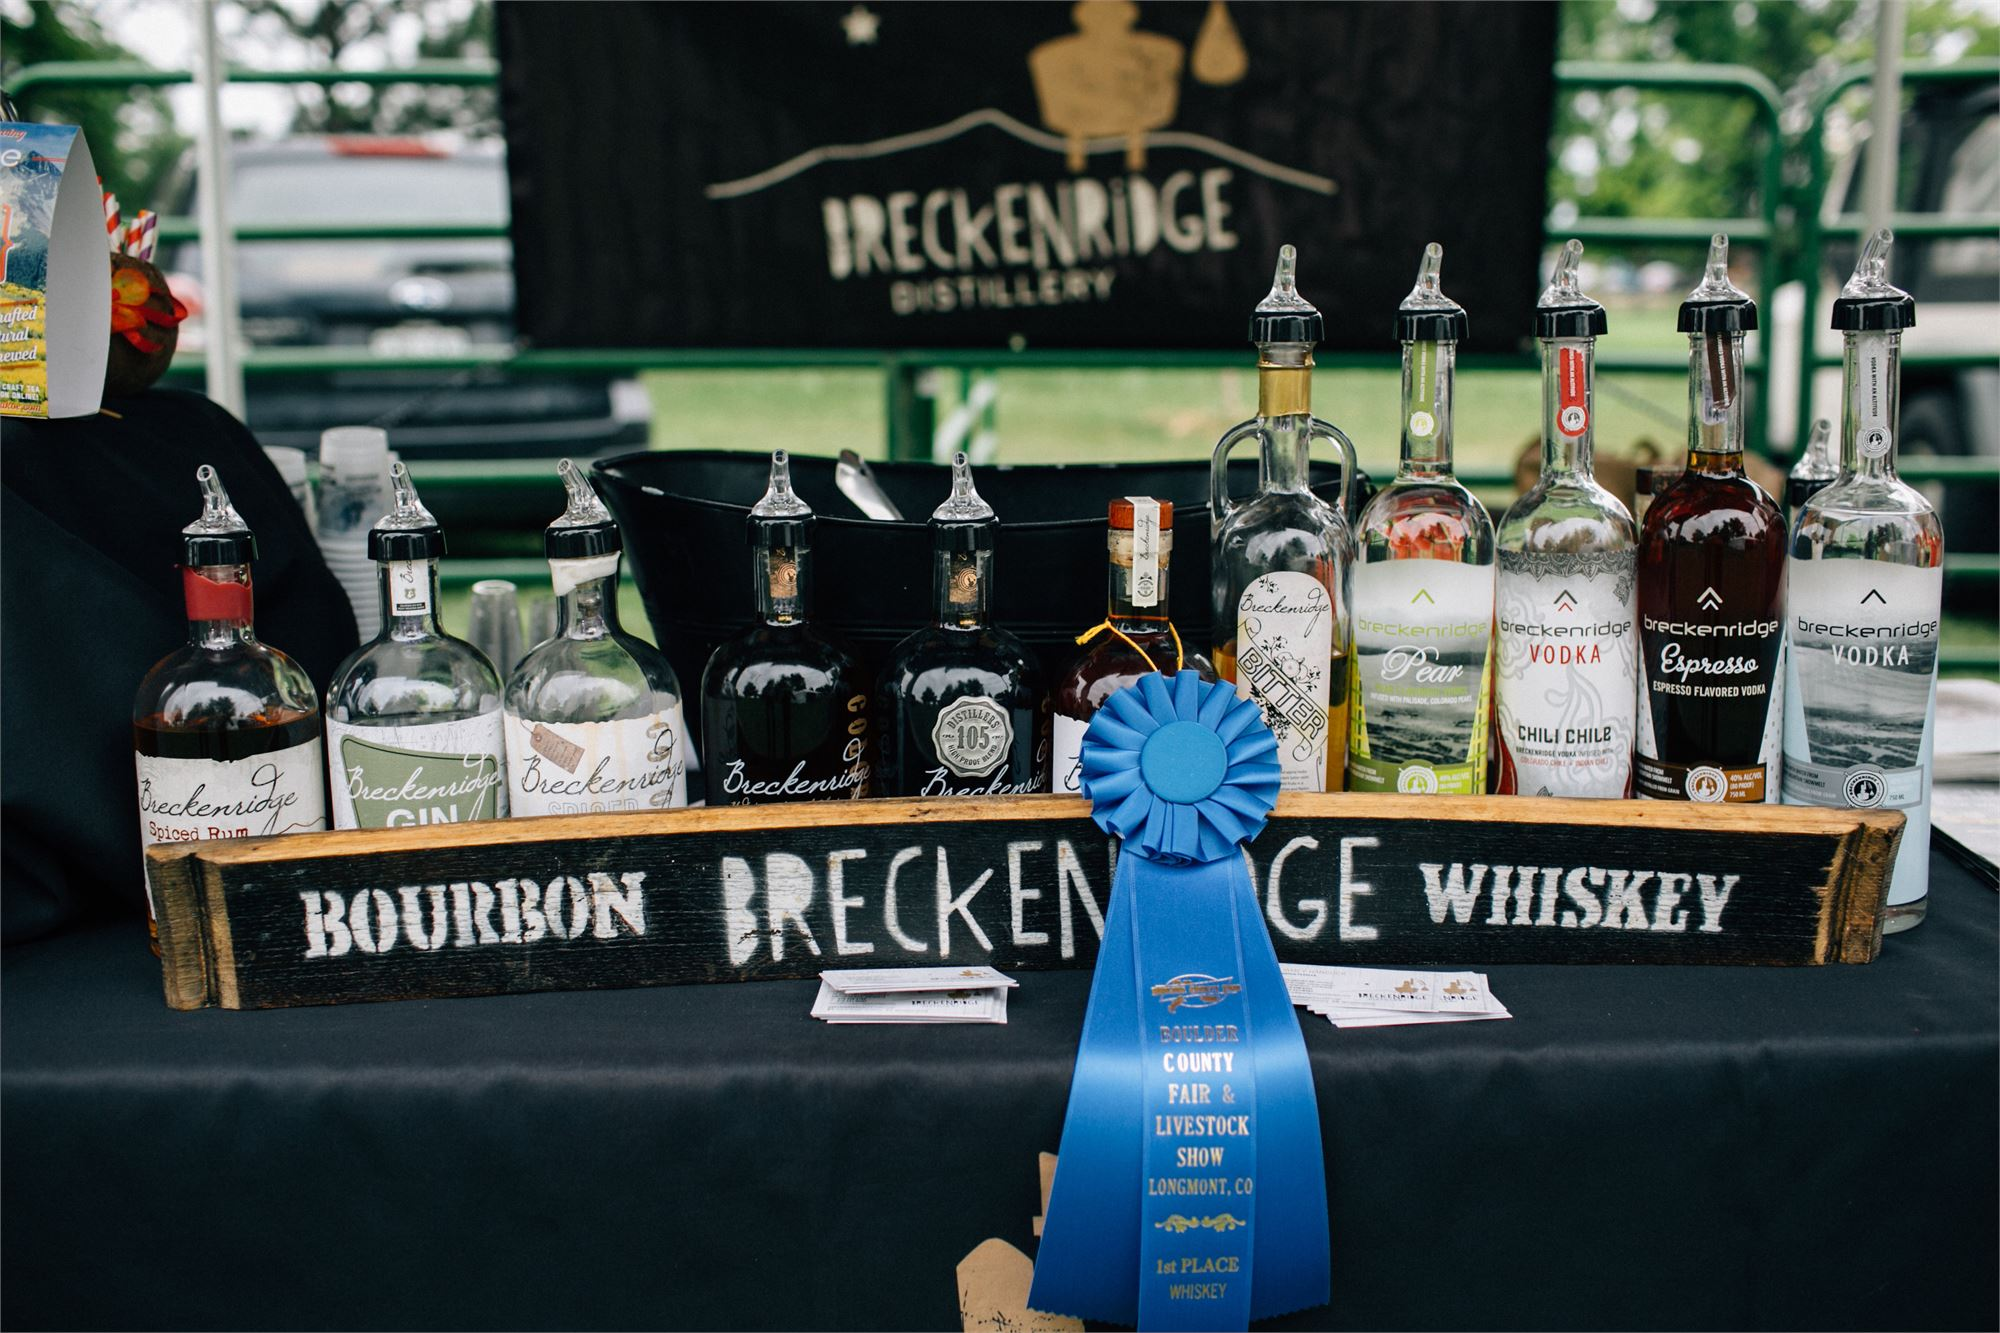 Breckenridge distillery display at the Craft Distillery Festival